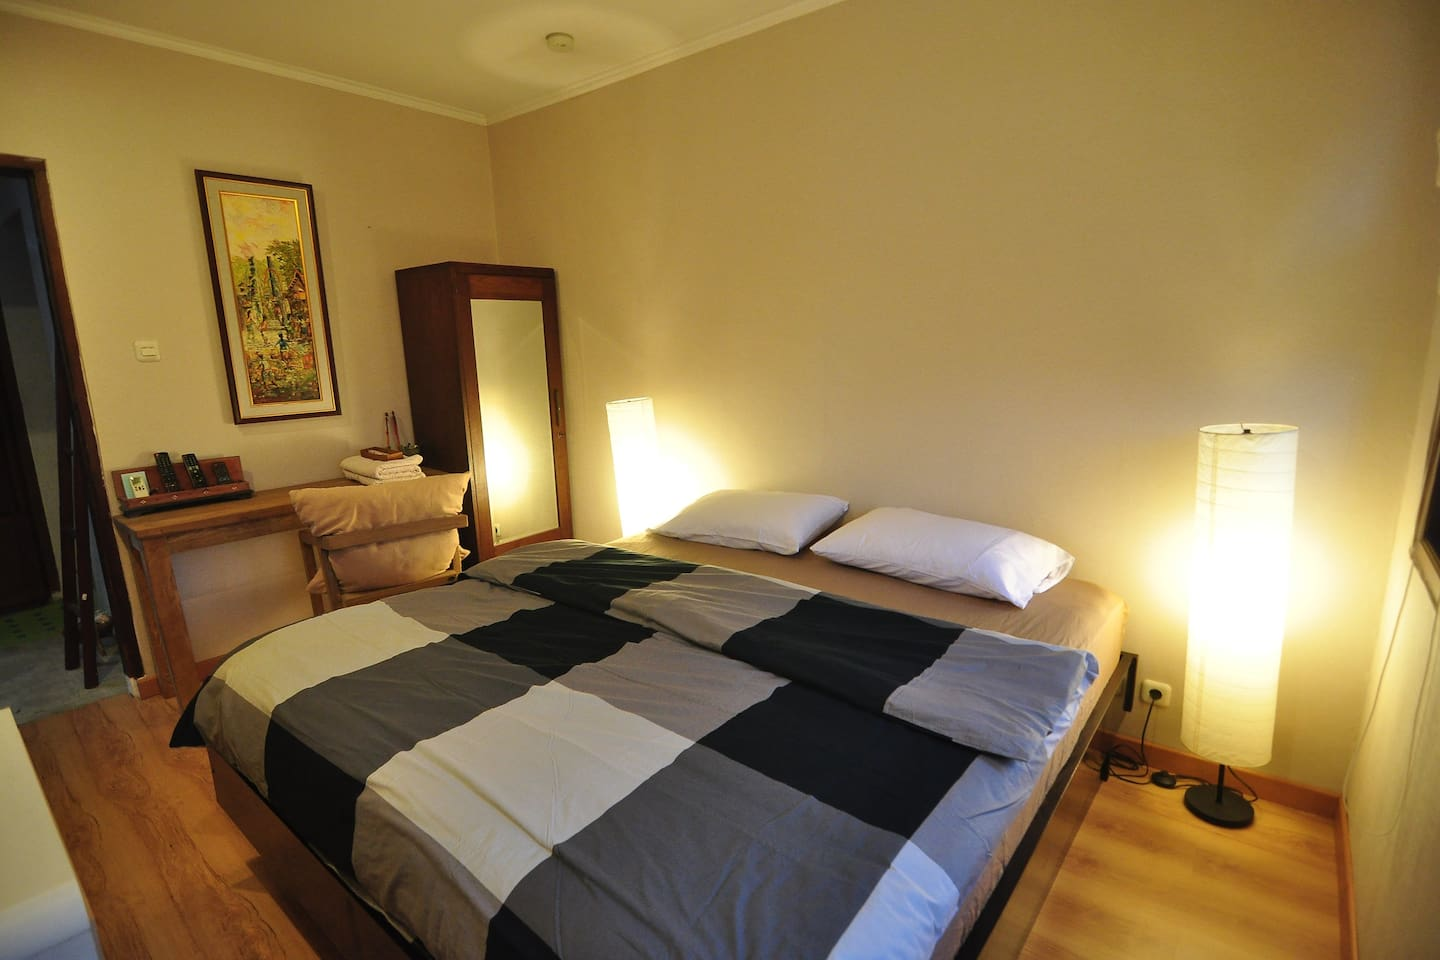 Your Private Room, located at 2nd floor and all yours. White sheet and king size real bed